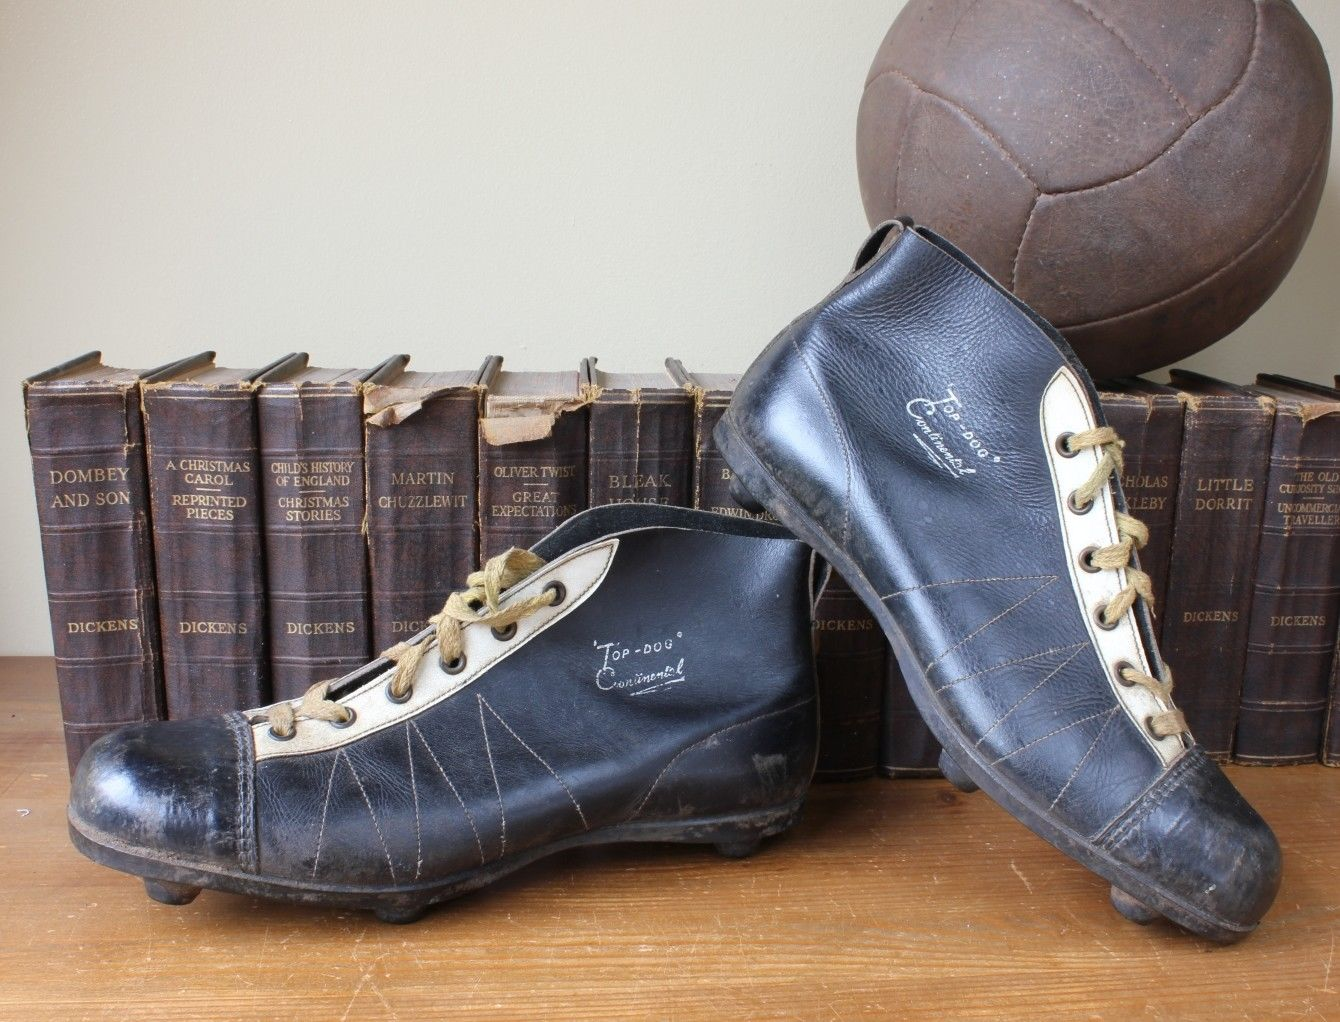 5fe561a0c Vintage Top Dog Continental Black Leather Football Boots. Old Soccer Cleats  c1950.